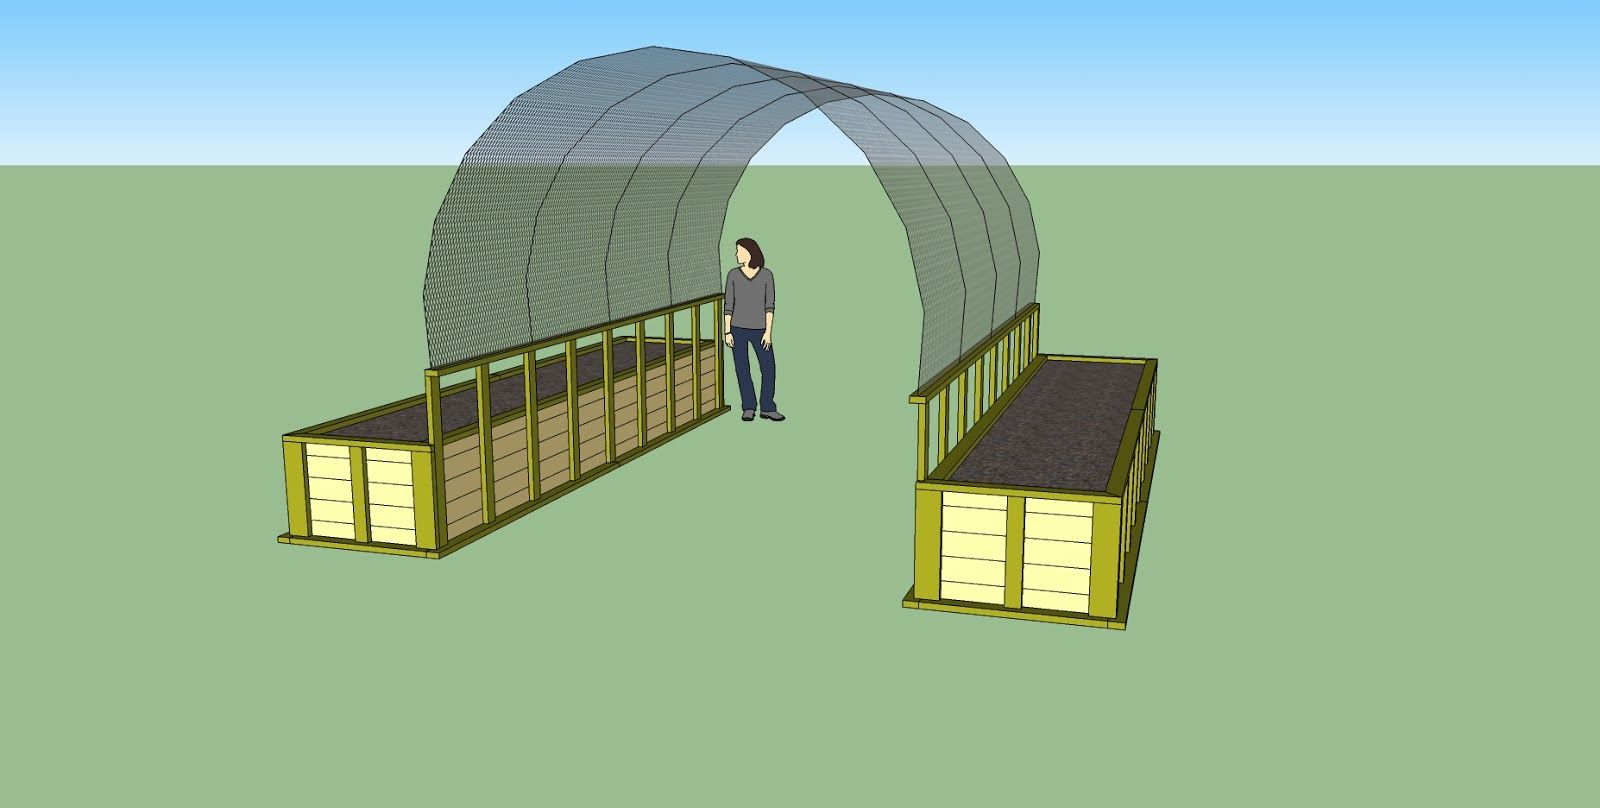 Sparkling Winter Ultimate Cattle Panel Greenhouse Cattle Panel Greenhouse Height An Arborin Summer Cattle Panel Greenhouse This Could Be A Greenhouse Cattle Panel Greenhouse This Could Be A Greenhouse houzz 01 Cattle Panel Greenhouse